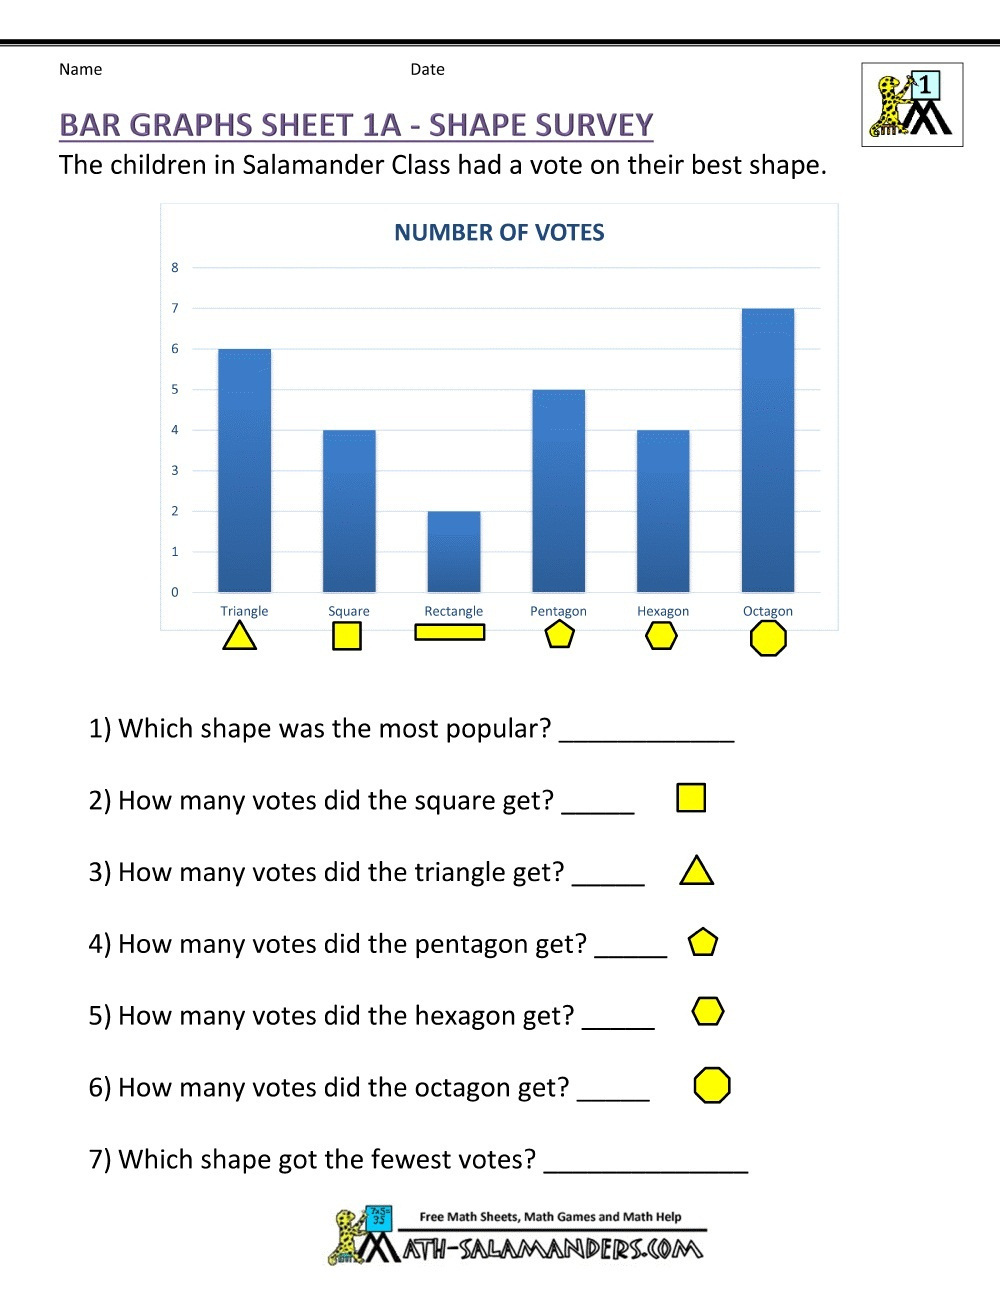 medium resolution of 20 Systemic Bar Graph Worksheets   KittyBabyLove.com